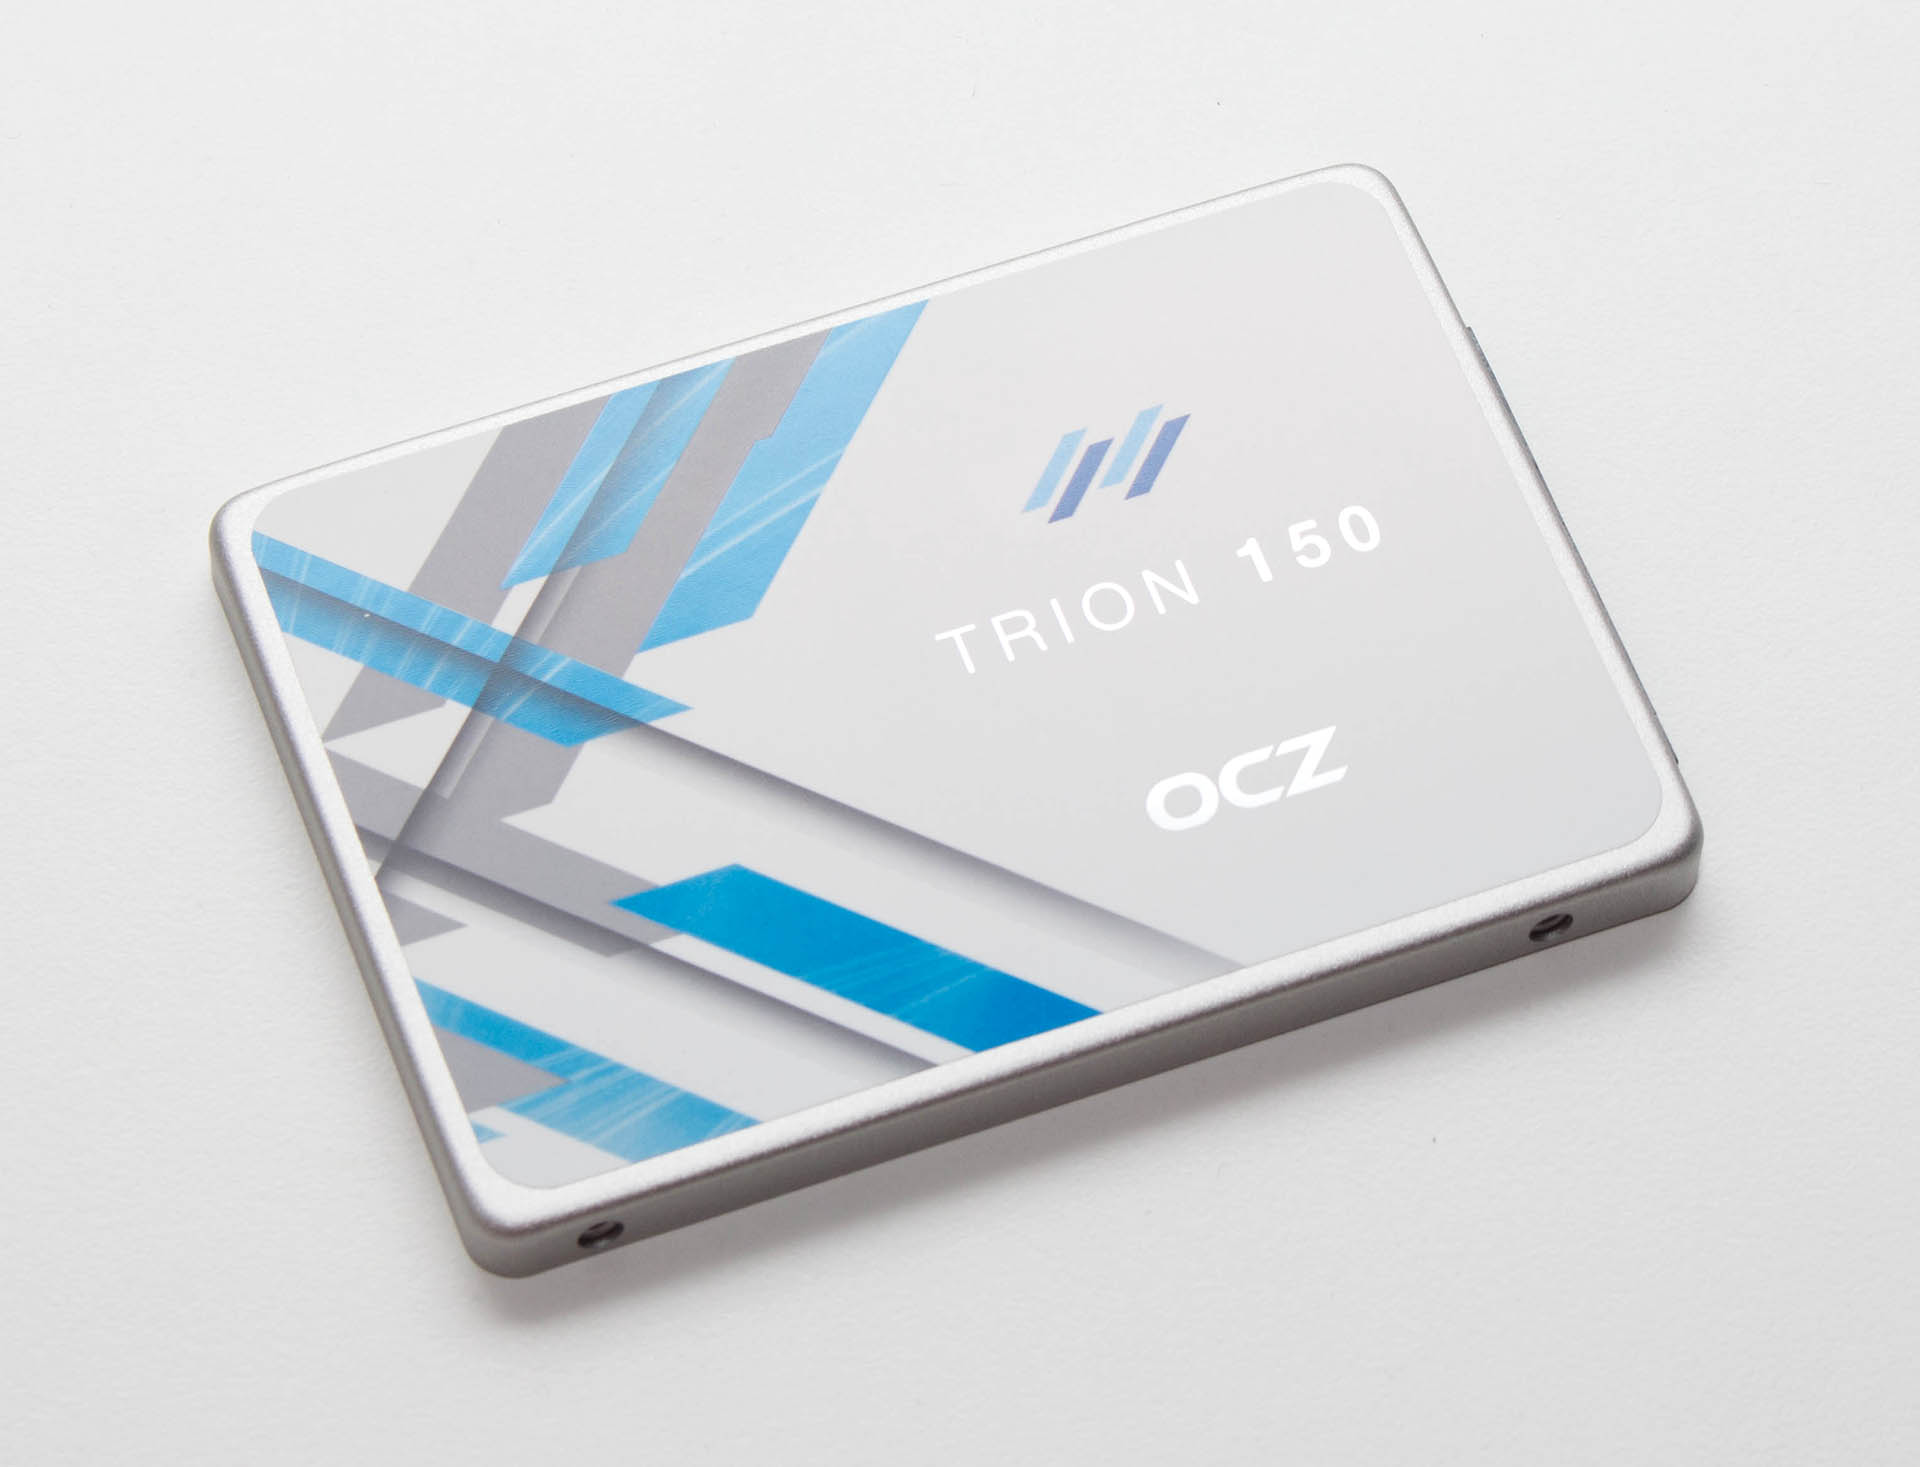 OCZ Trion 150 240GB test